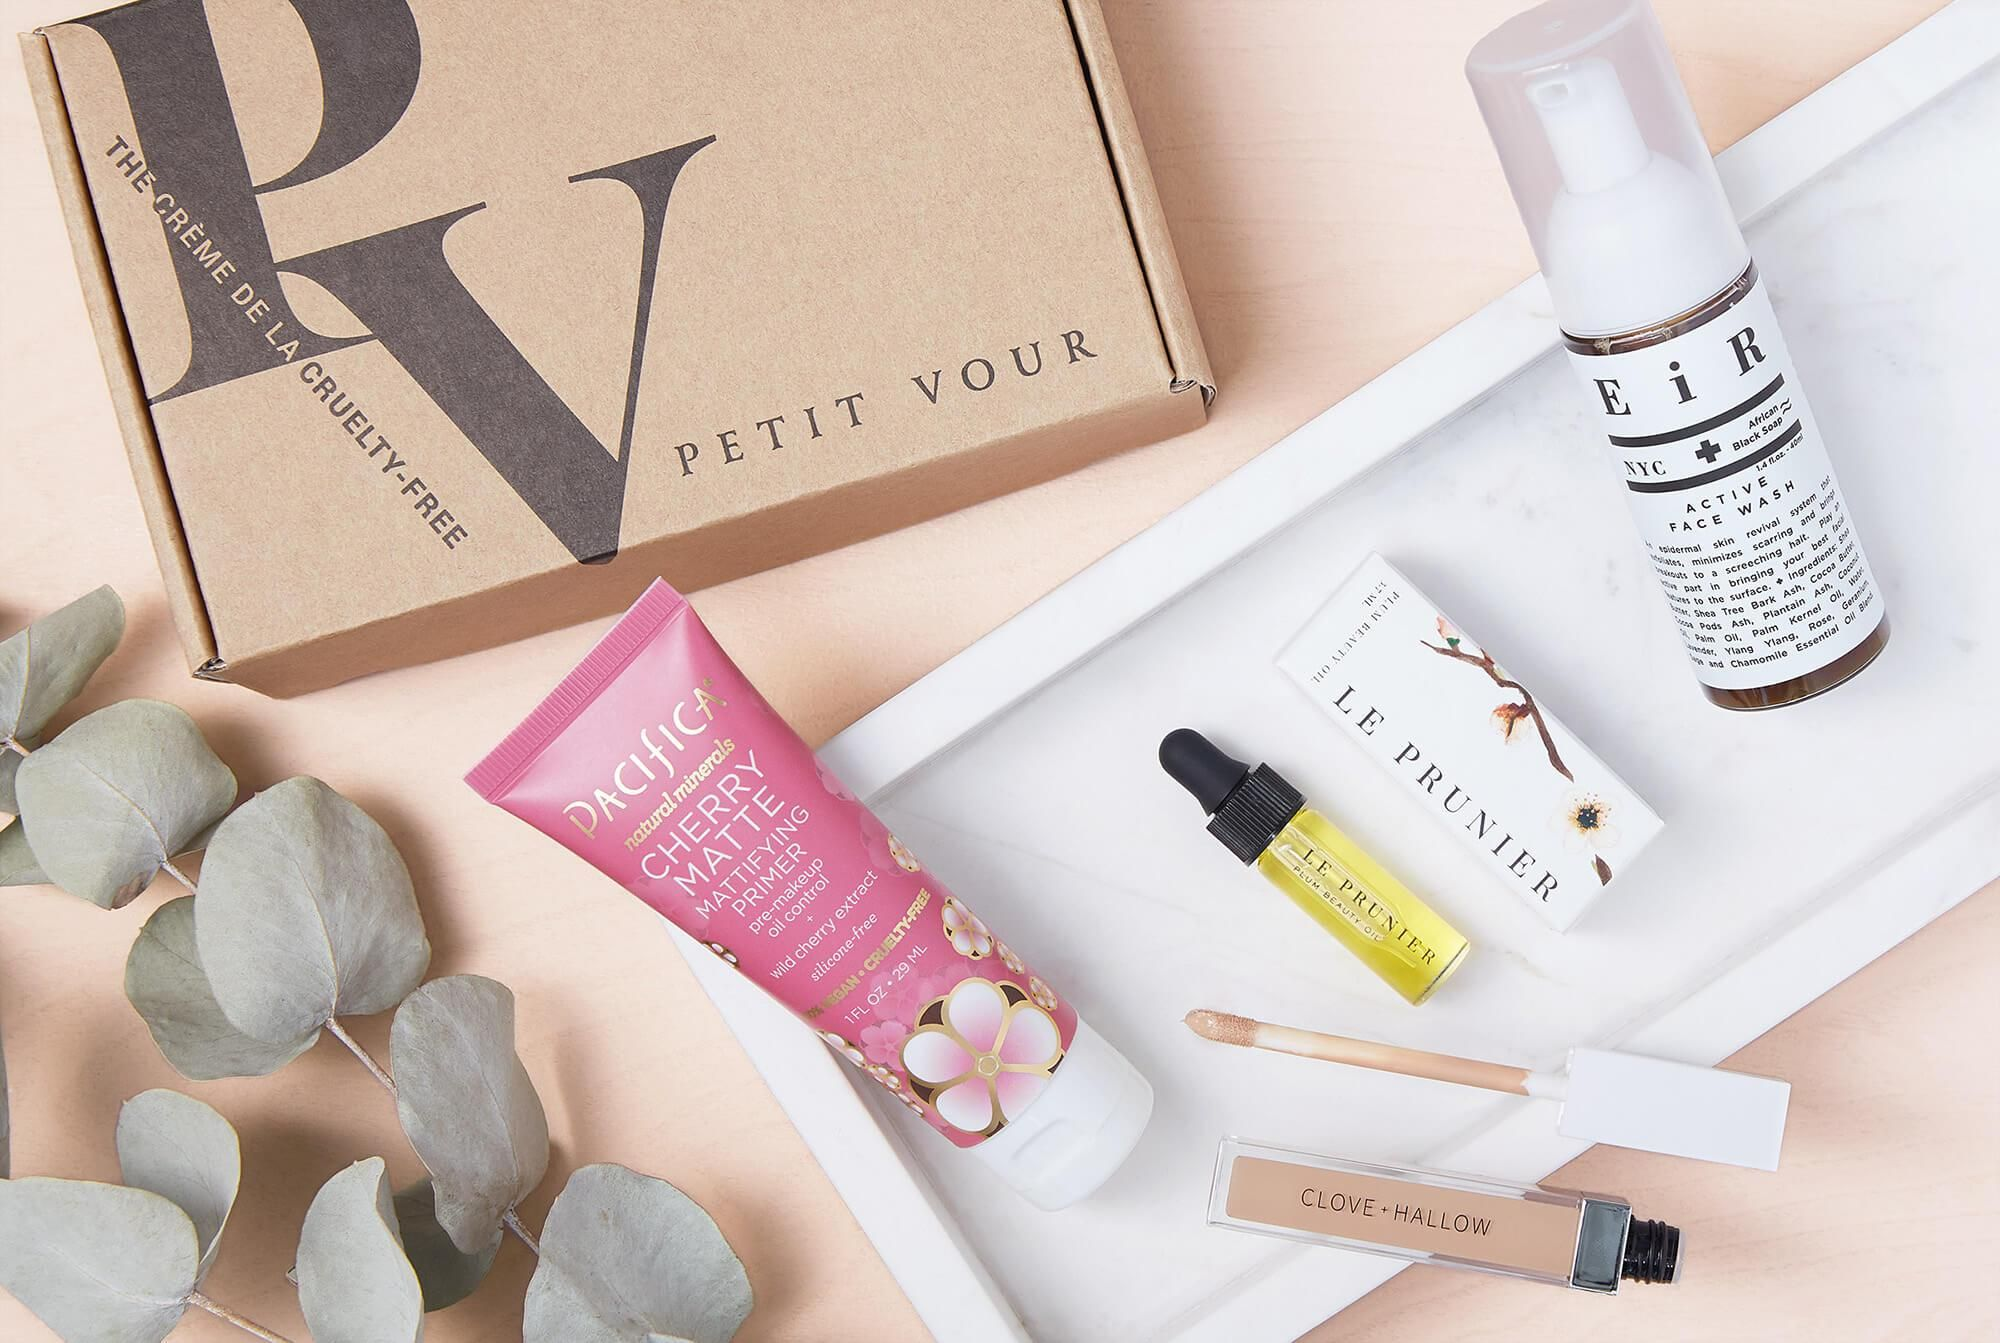 subscription to Petit Vour's luxurycurated, crueltyfree